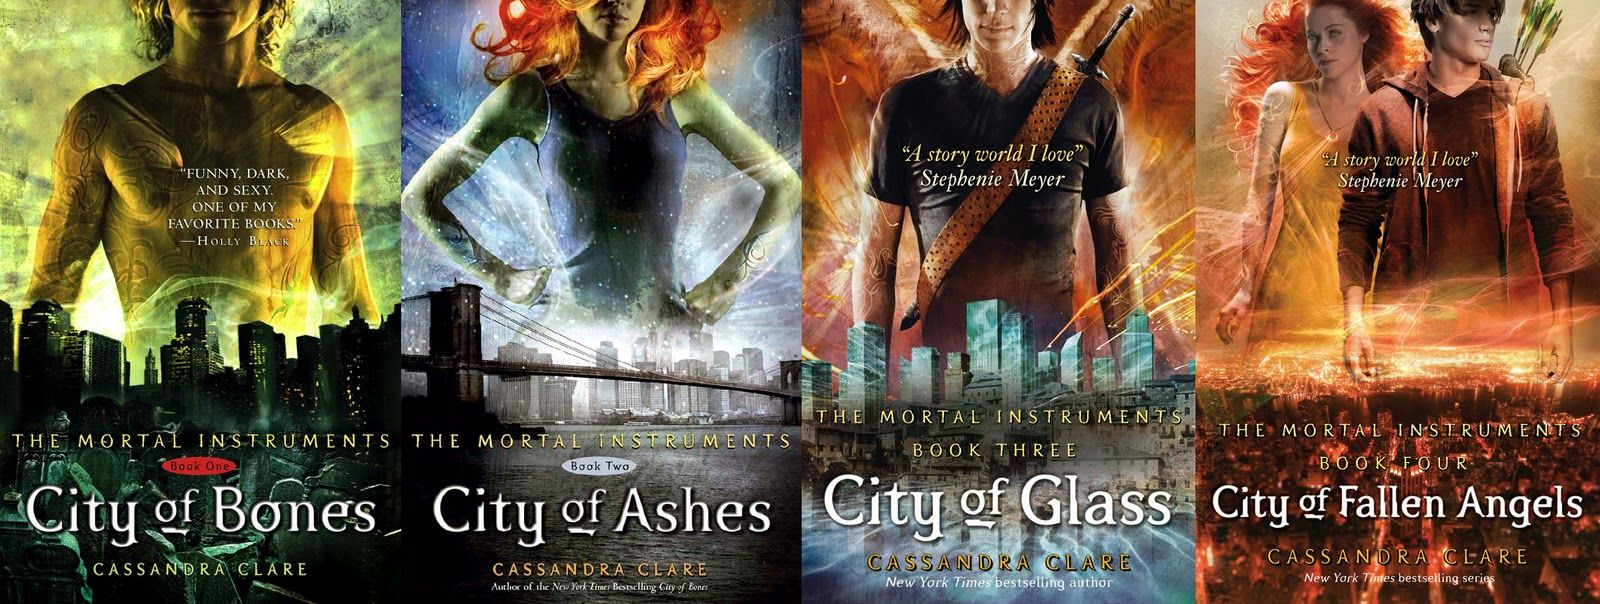 Although the main character is a girl, both guys and girls will enjoy this book.  If you enjoyed Harry Potter (aka you're into fantasy) you will def enjoy this.  Please cont reading even after you have endured the series' shocking twist.  It's worth it!